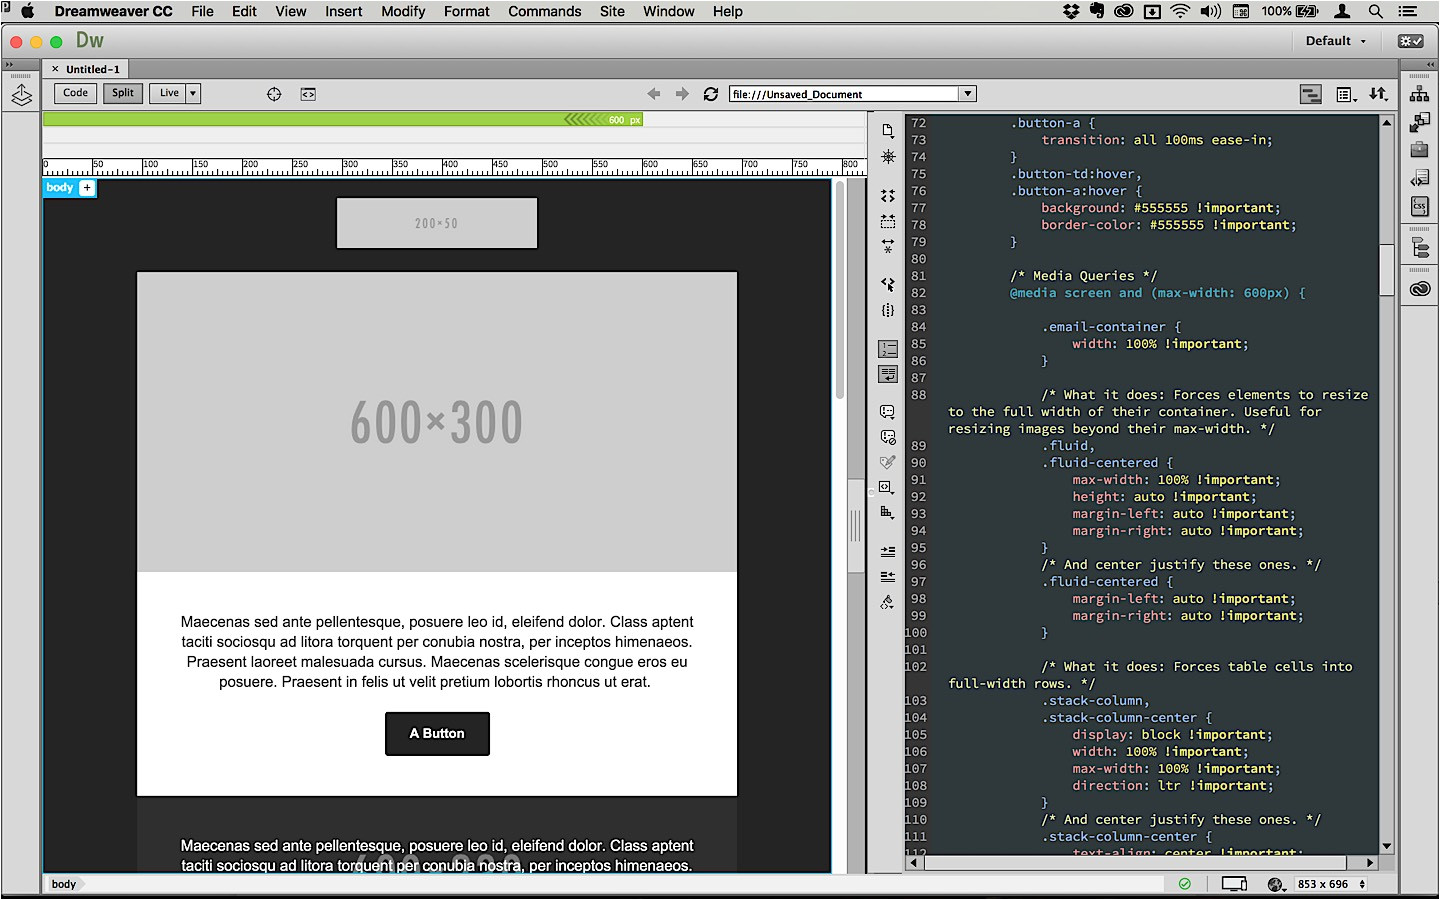 email templates in dreamweaver cc